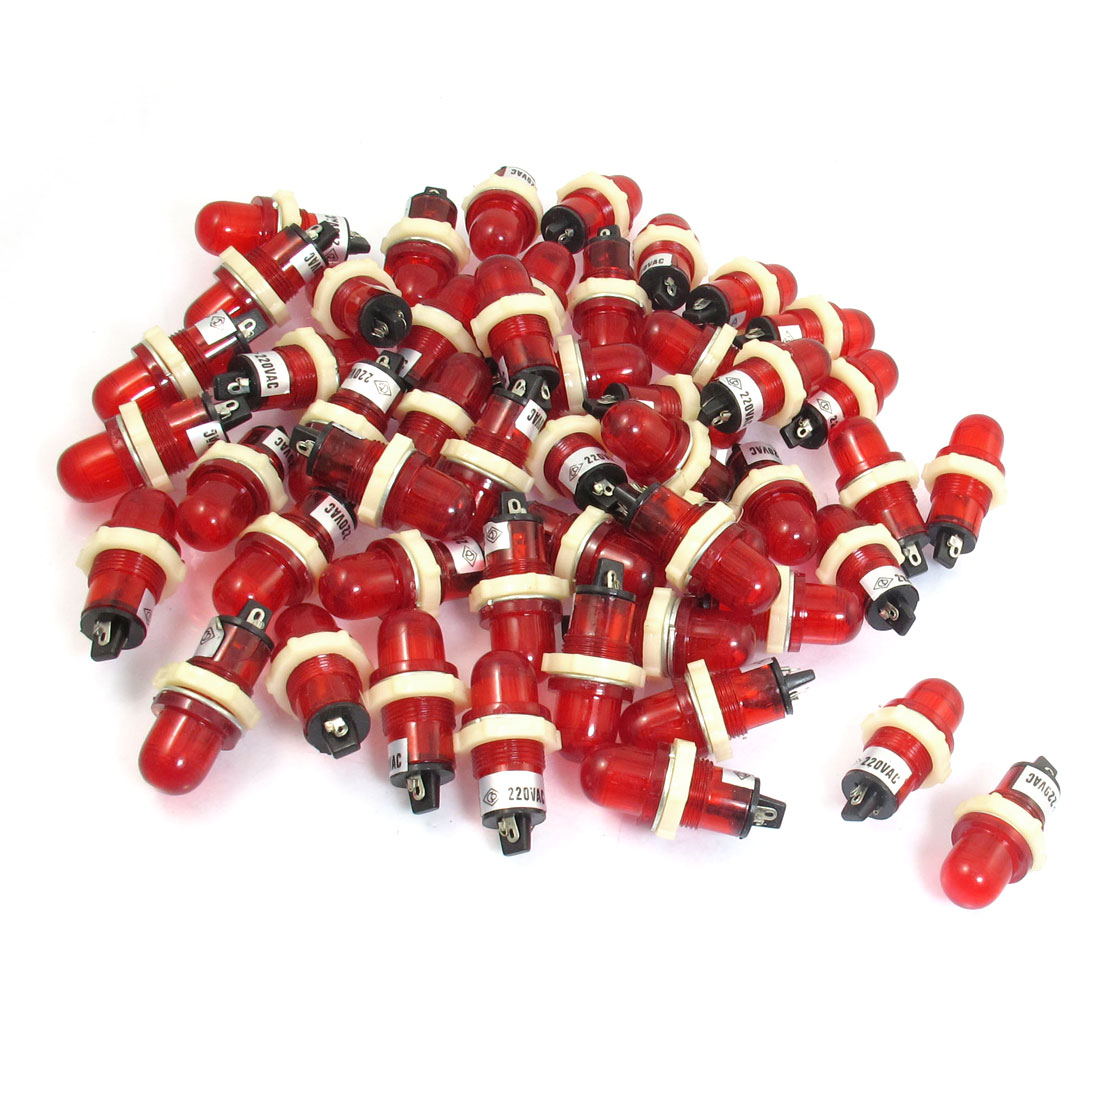 50 Pcs AC 220V 15mm Round Head Red Power Indicator Signal Pilot Light XD15-2